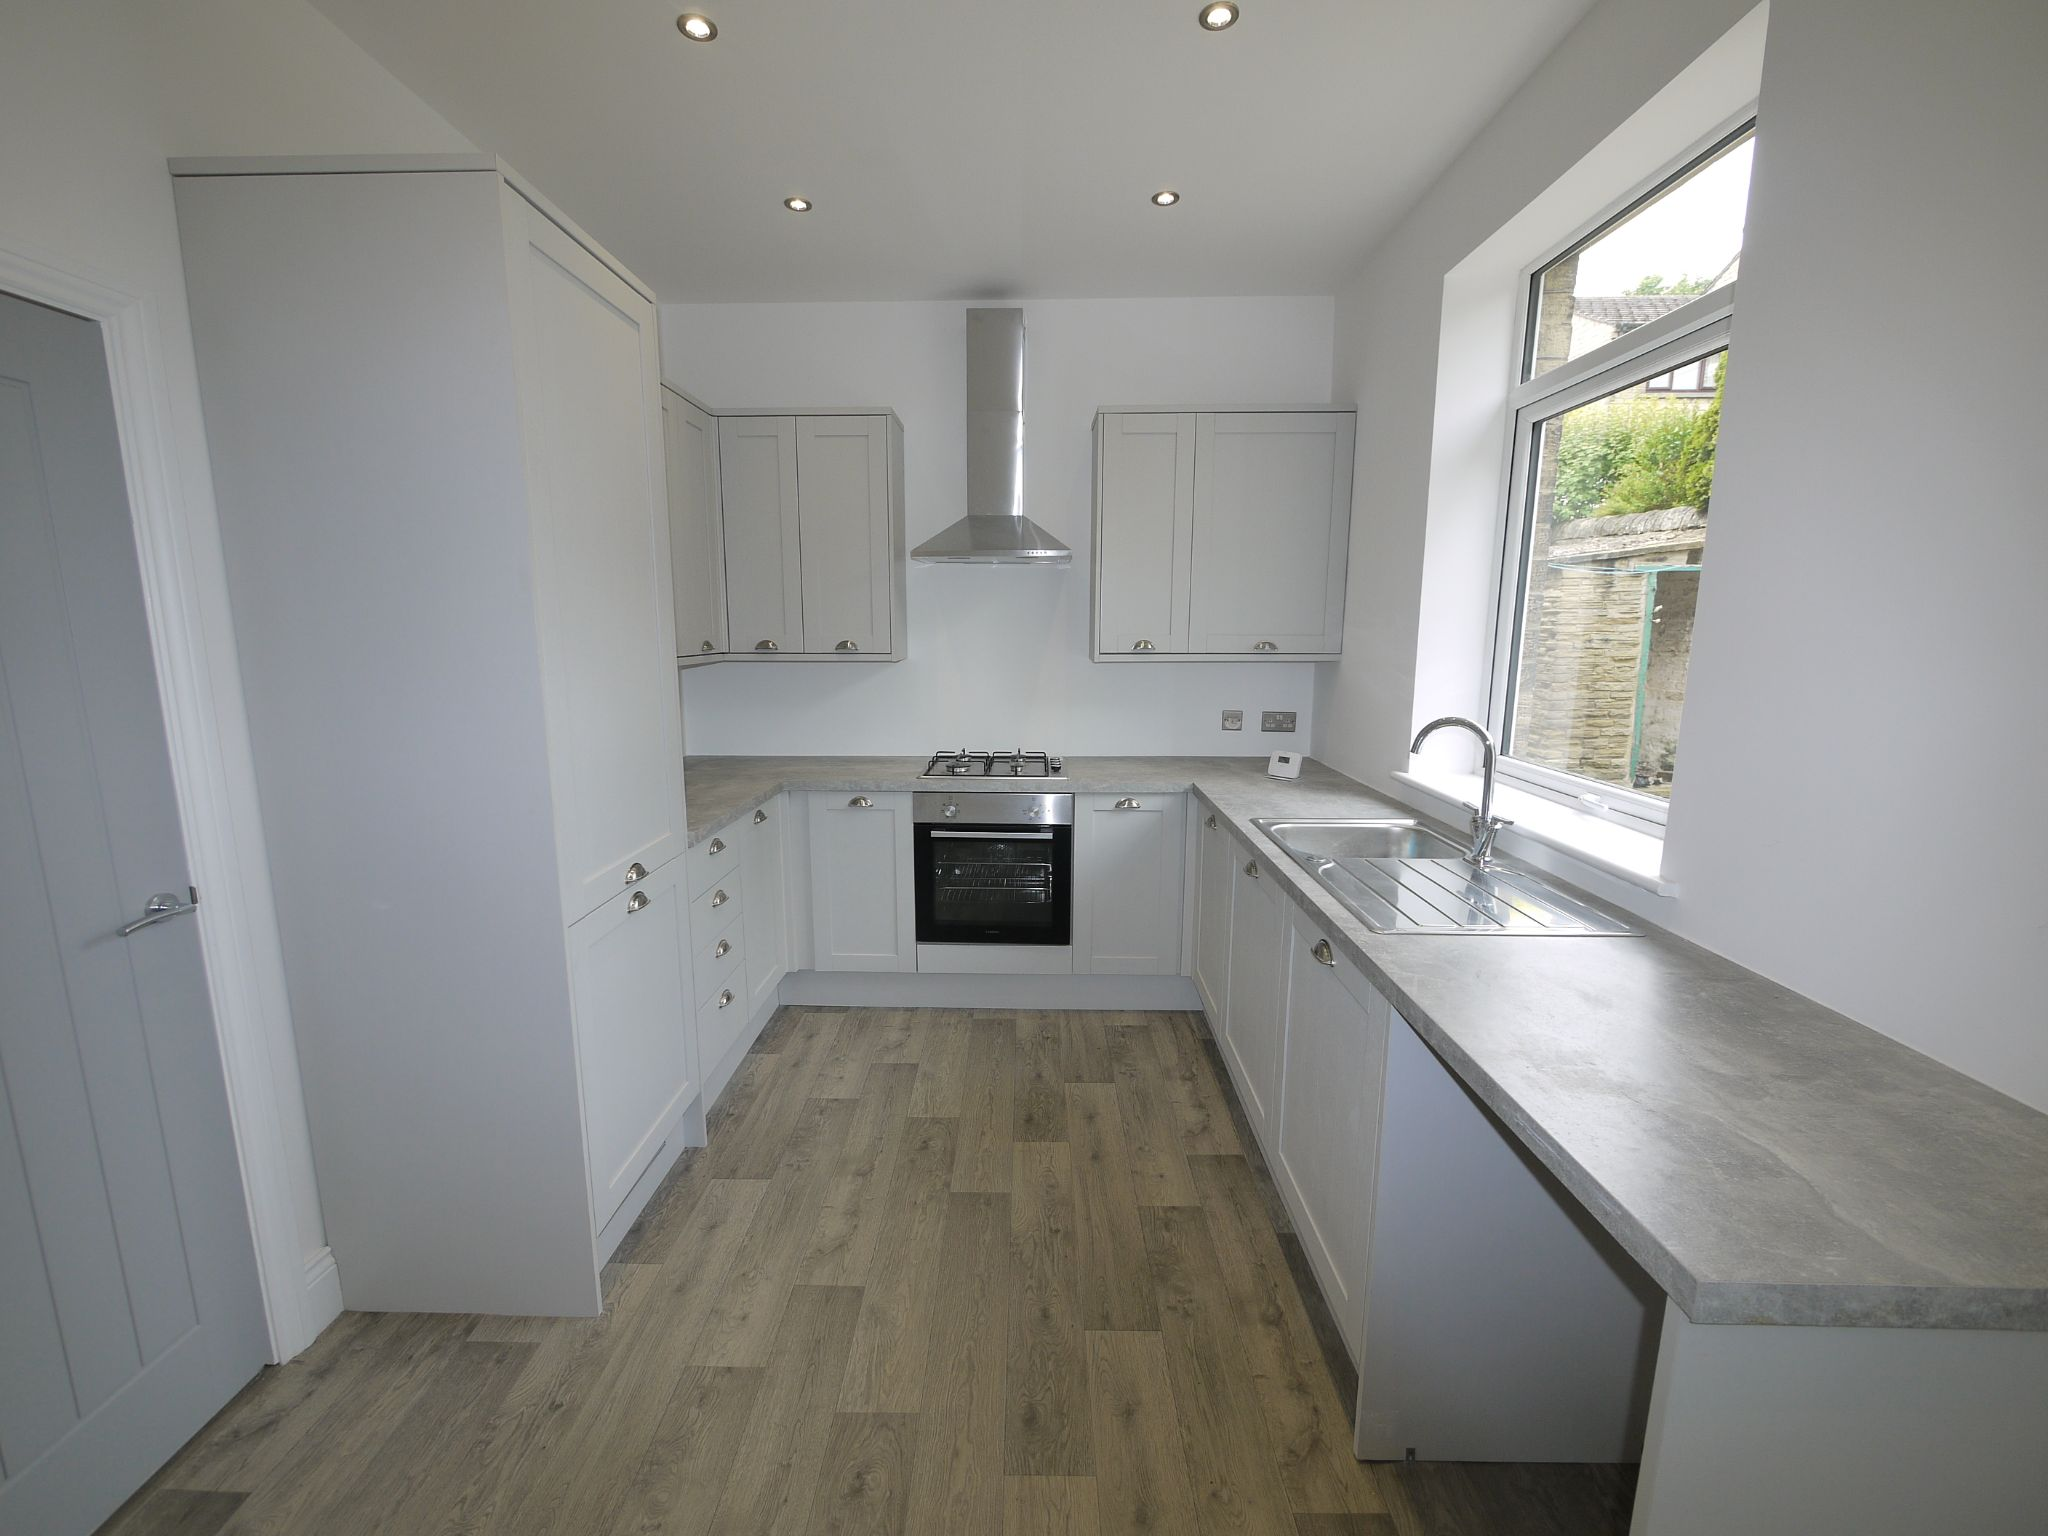 3 bedroom mid terraced house For Sale in Brighouse - Kitchen.